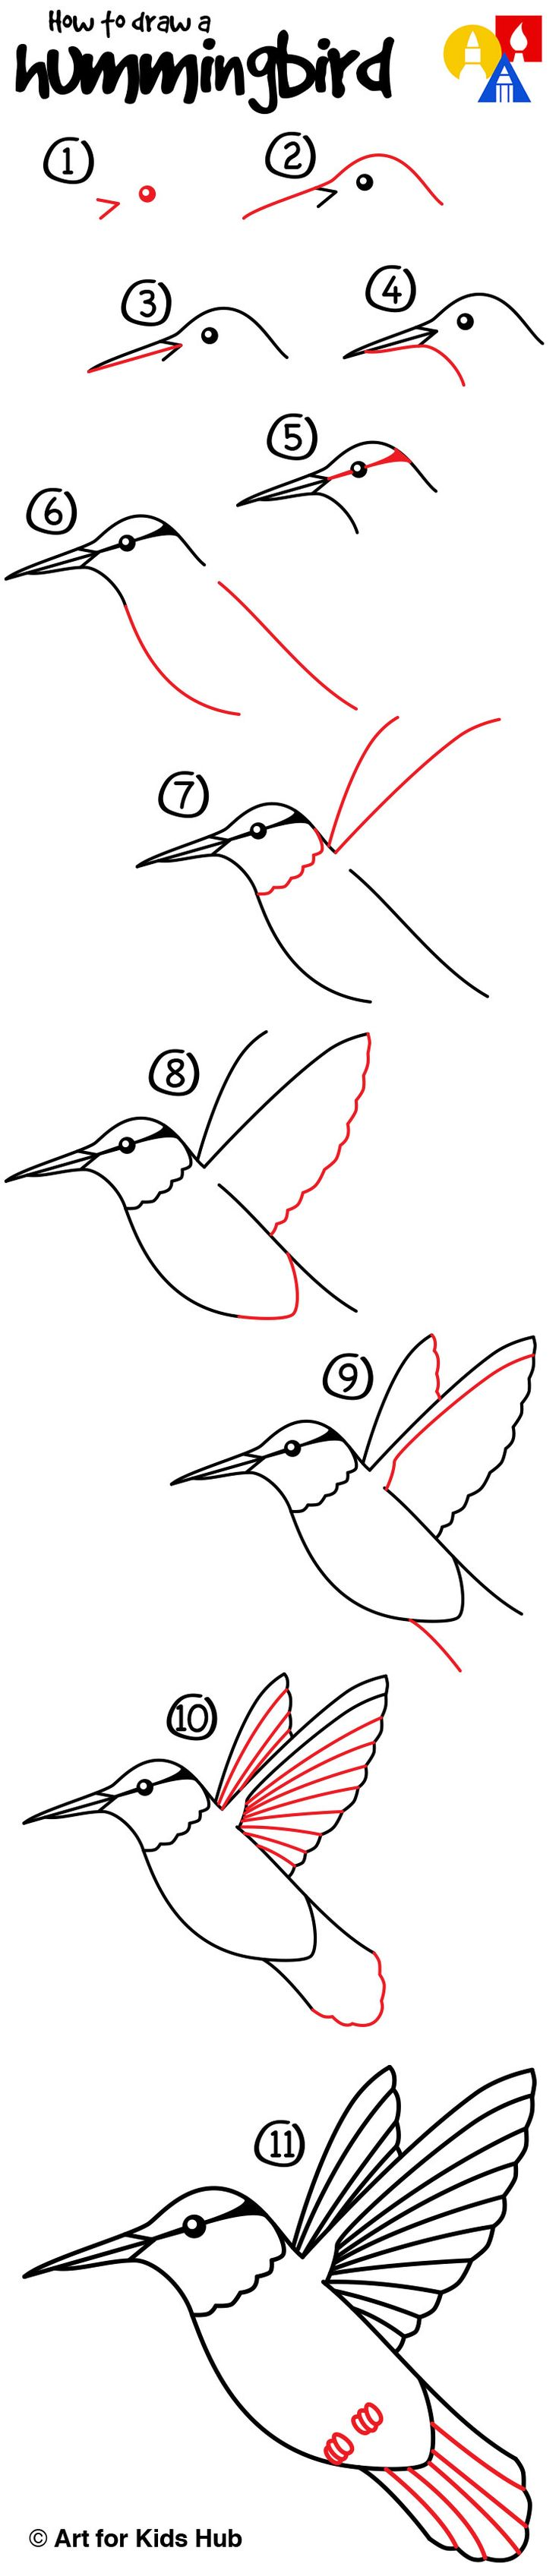 How to draw a hummingbird!